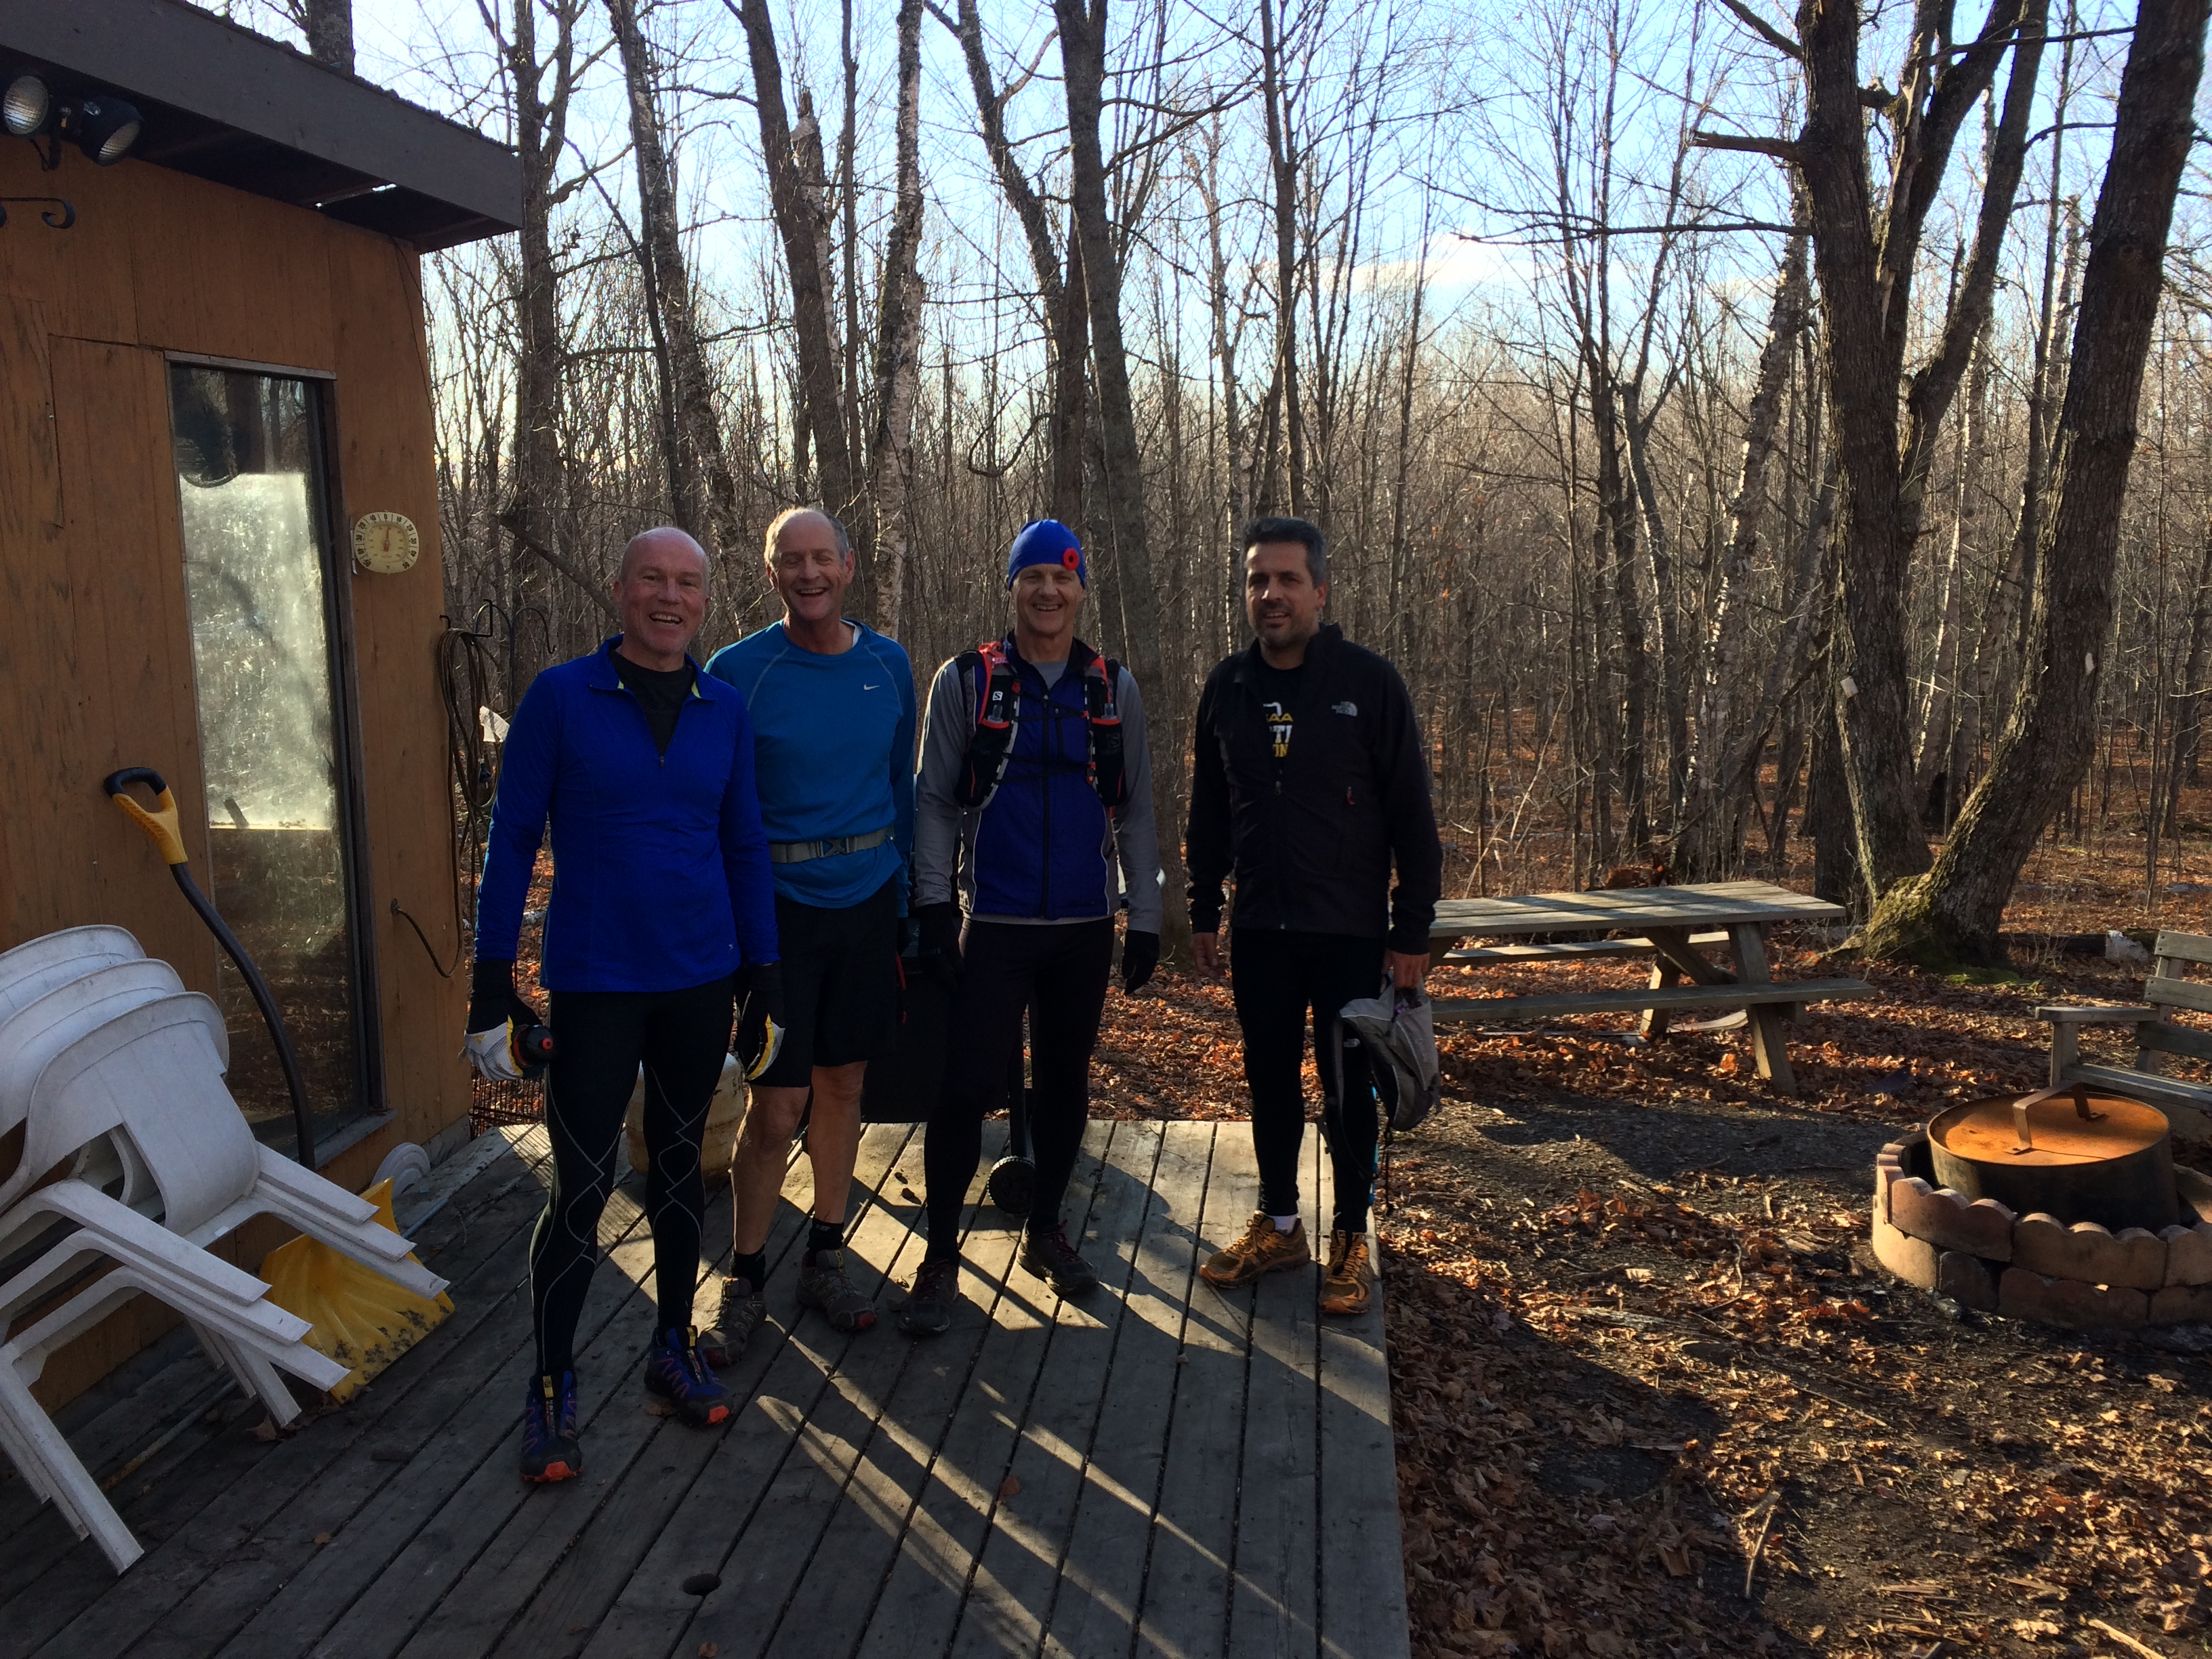 Mike, Bob, Jim, Steve_Novemberance Day Trail run_2016